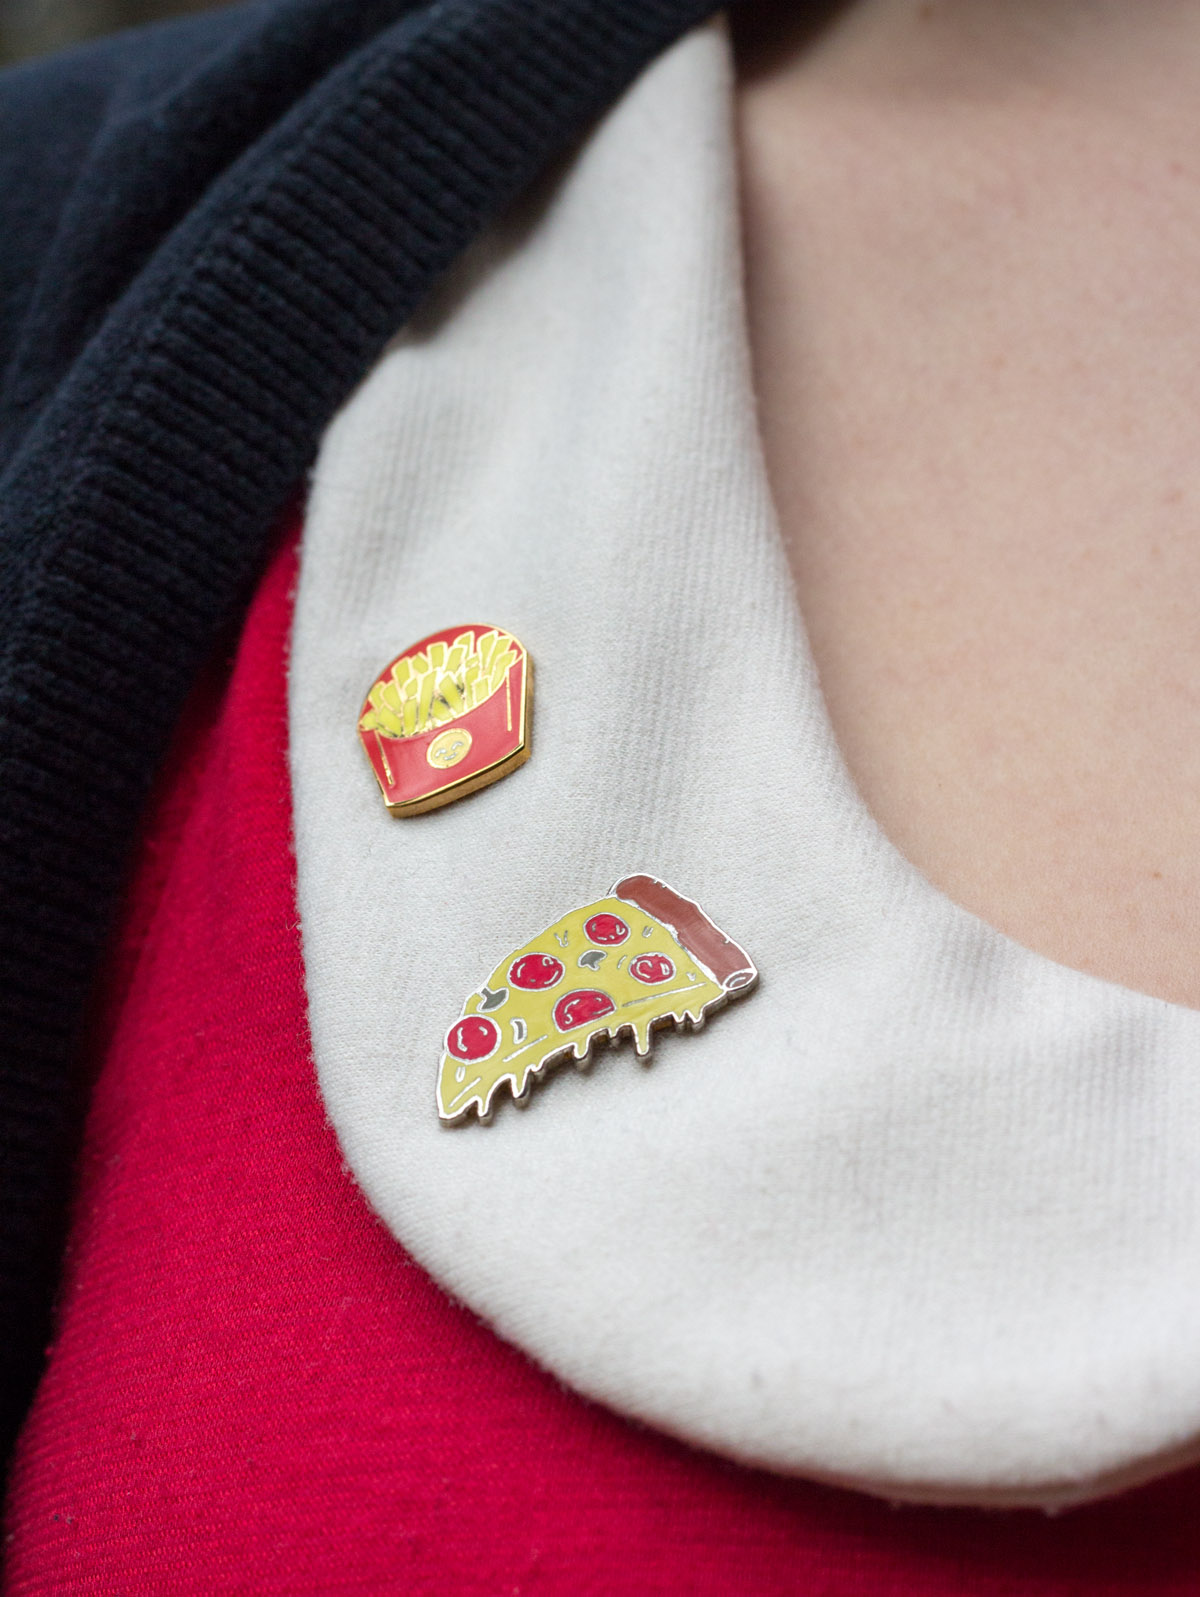 Fries and Pizza Pins on a White Collar